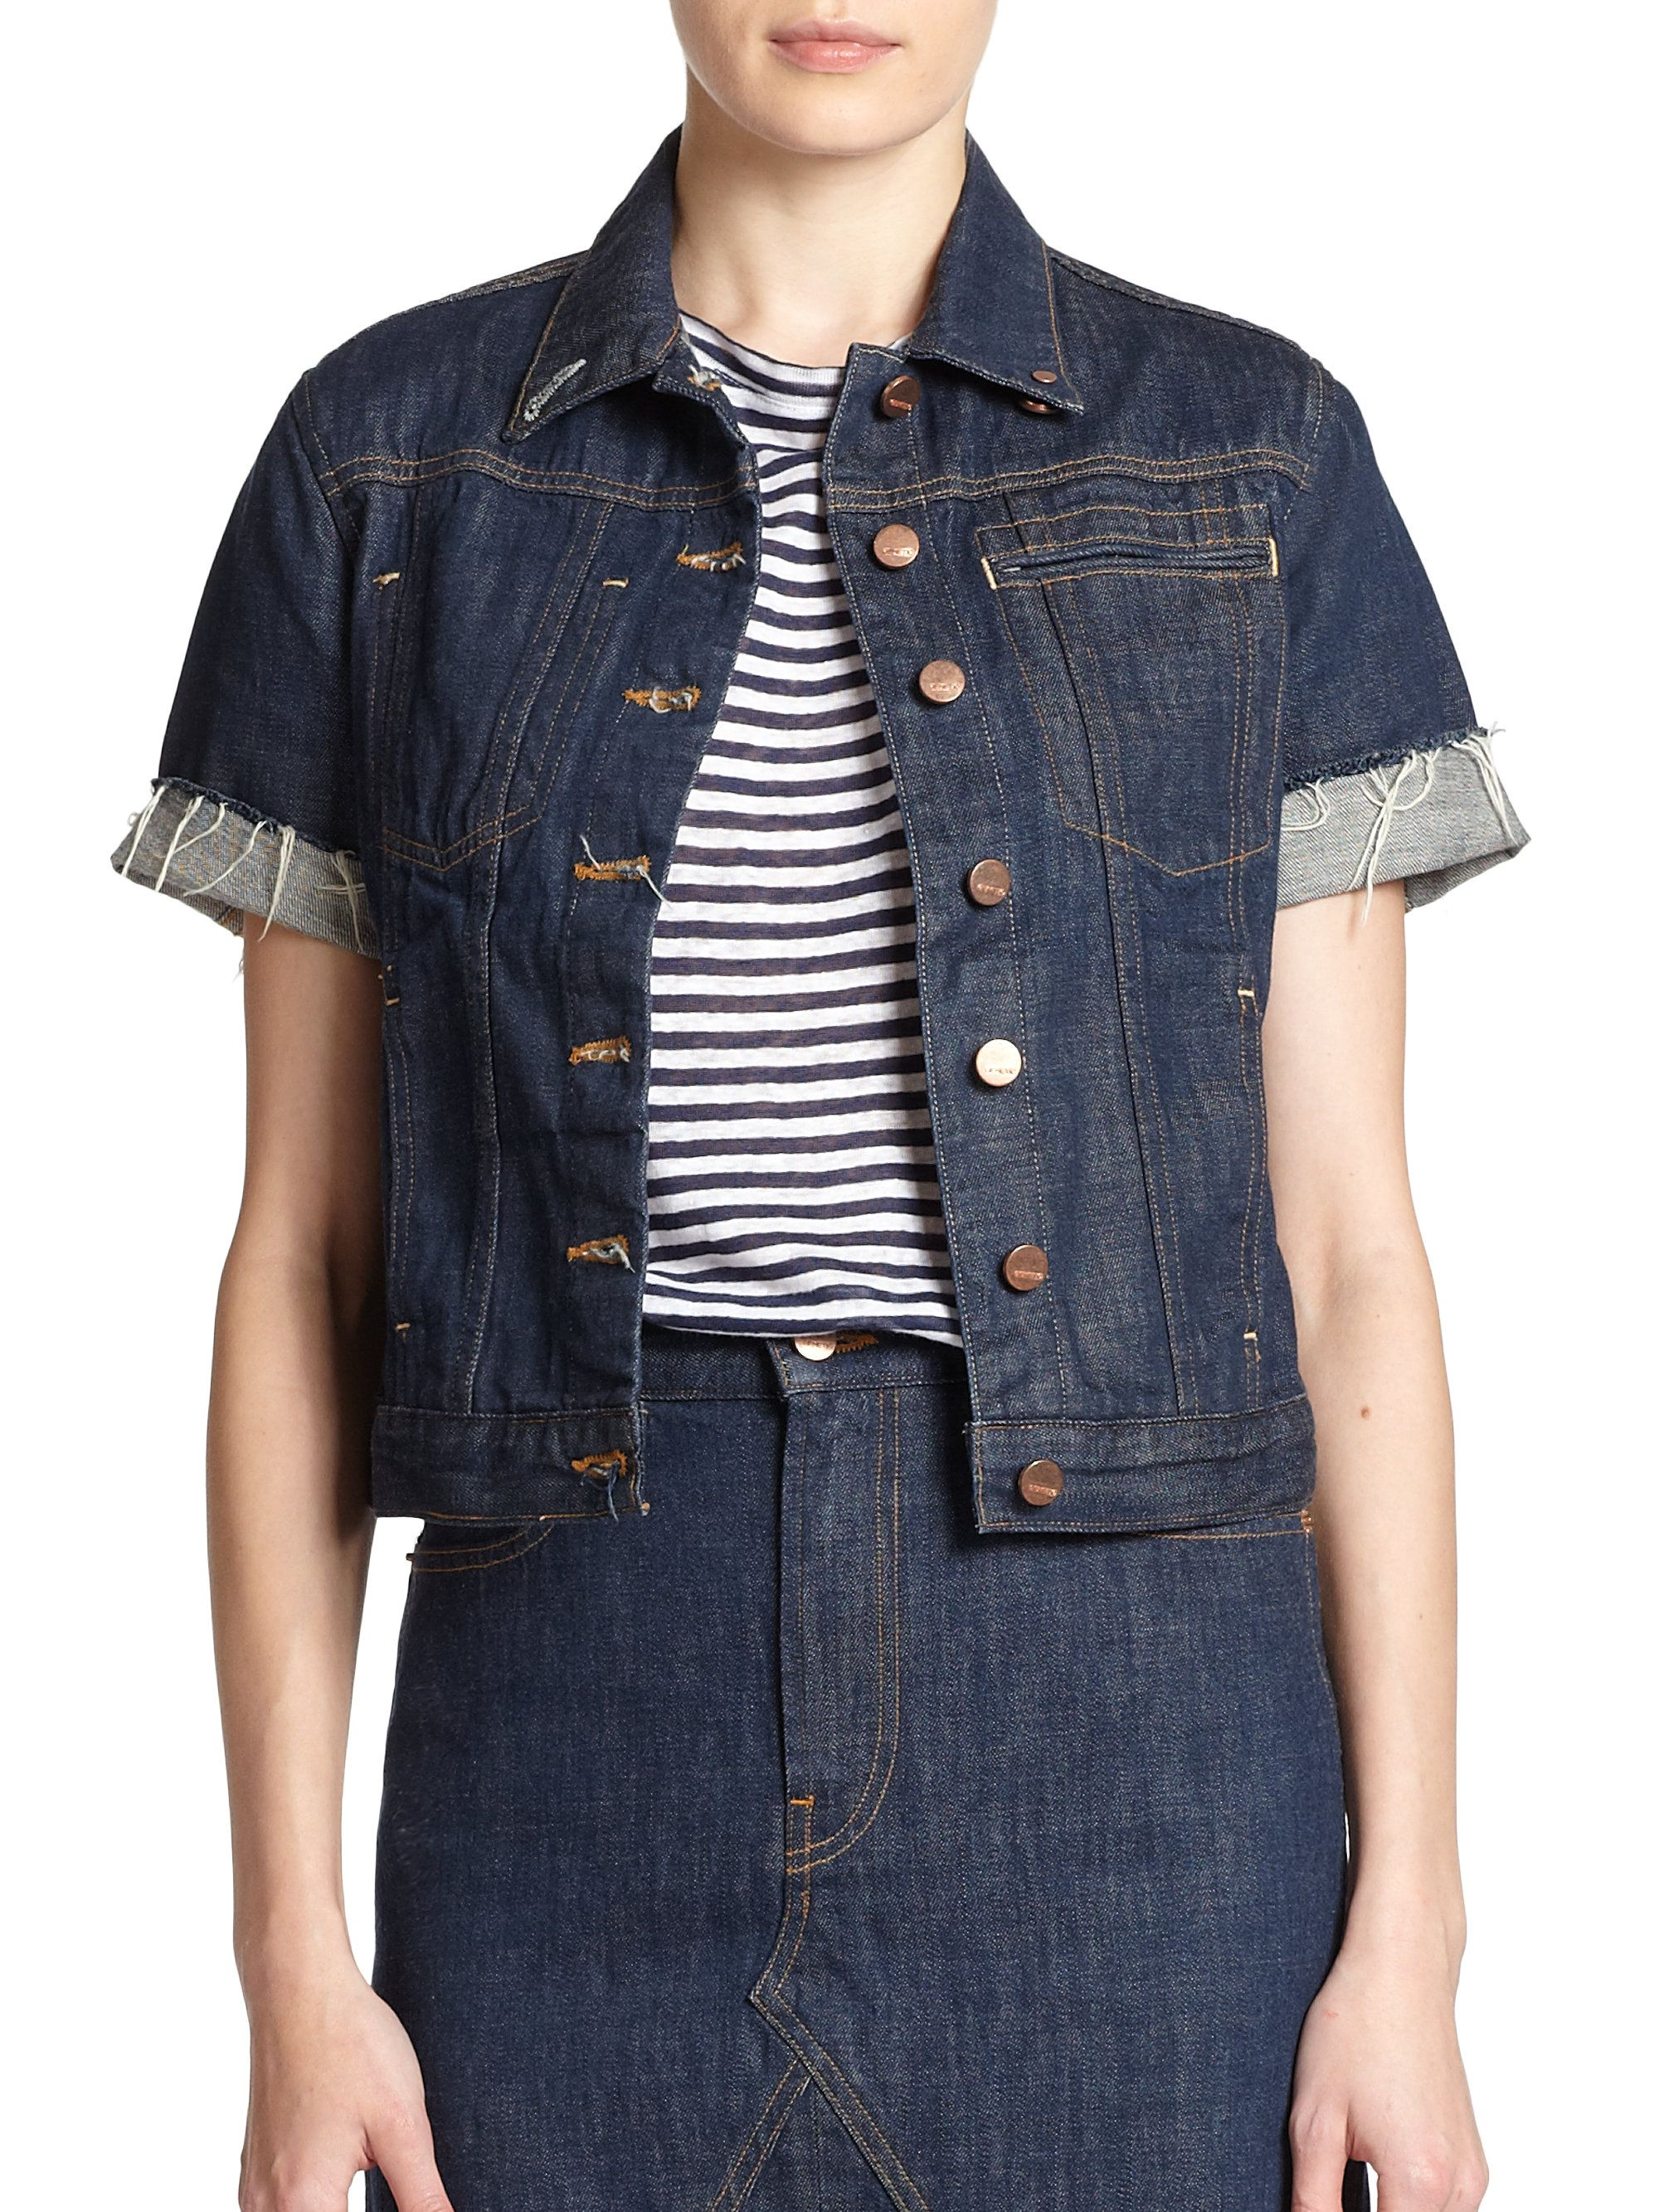 Genetic Denim Blondie Short-Sleeve Denim Jacket | The Fosters ...